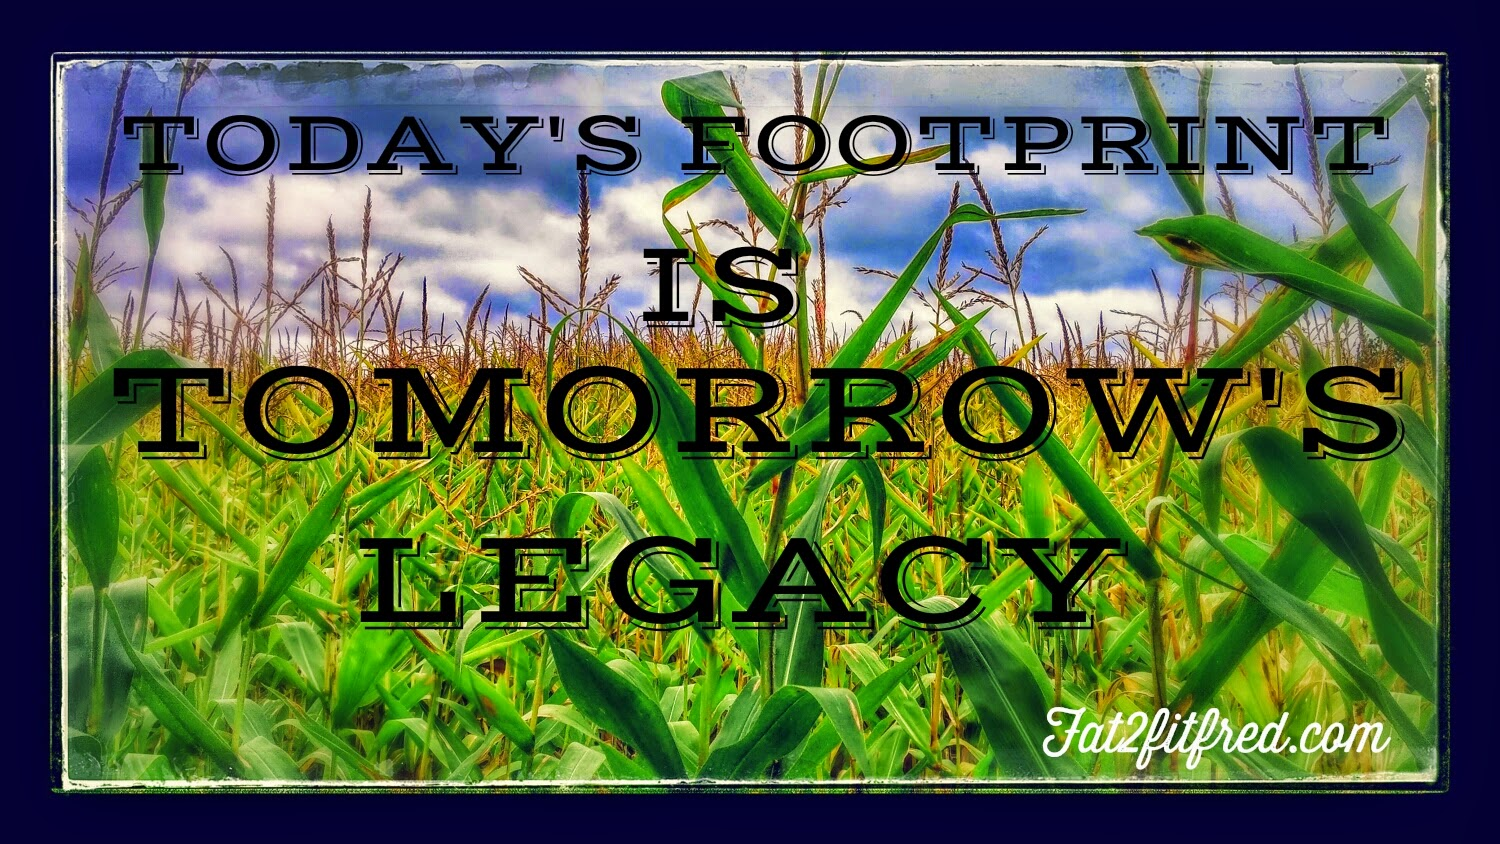 today's footprint is tomorrow's legacy